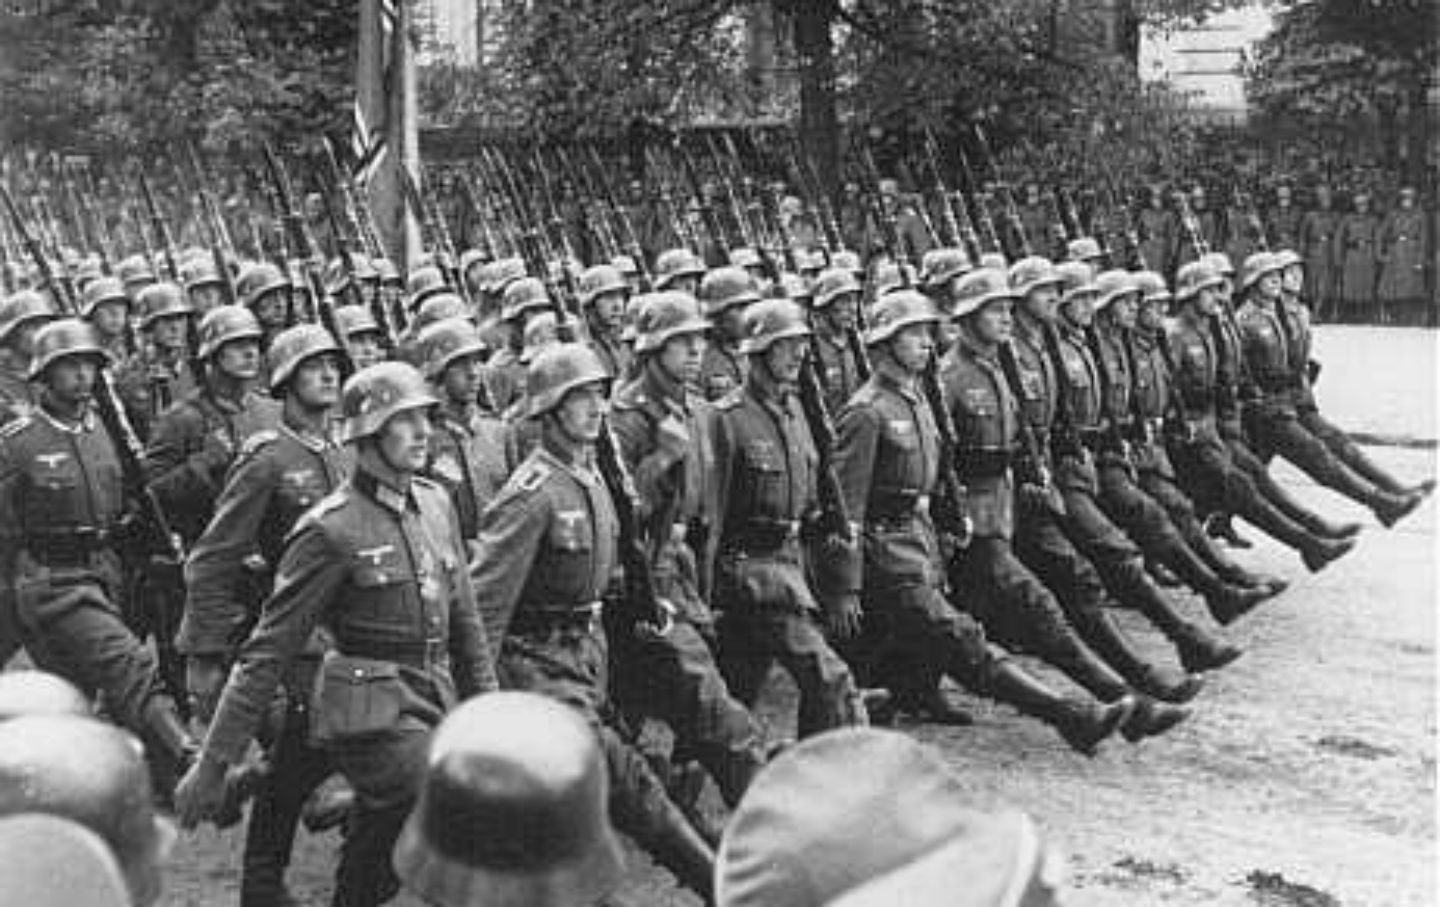 germanys invasion of poland and the beginning of wold war ii Invasion of poland, fall 1939  the polish army was defeated within weeks of the invasion from east prussia and germany in the north and  world war ii in.